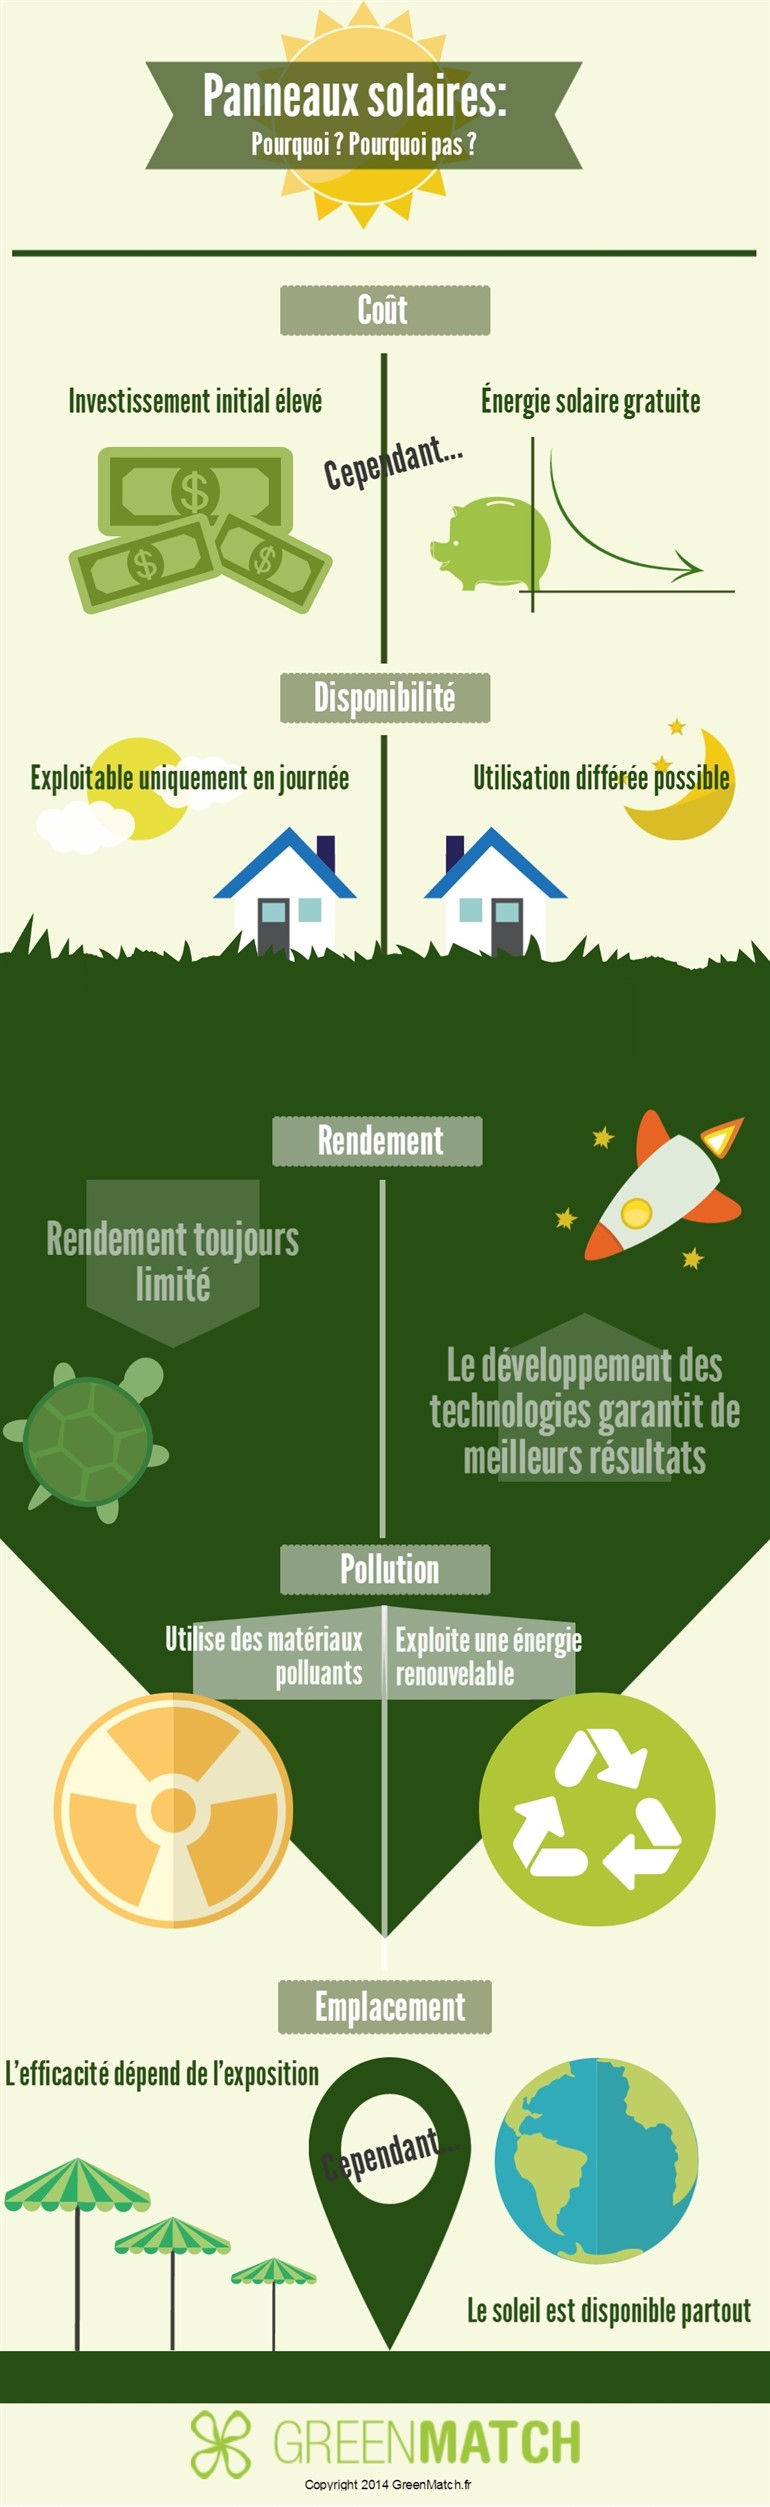 infographie 5 avantages et inconv nients du panneau solaire greenmatch. Black Bedroom Furniture Sets. Home Design Ideas